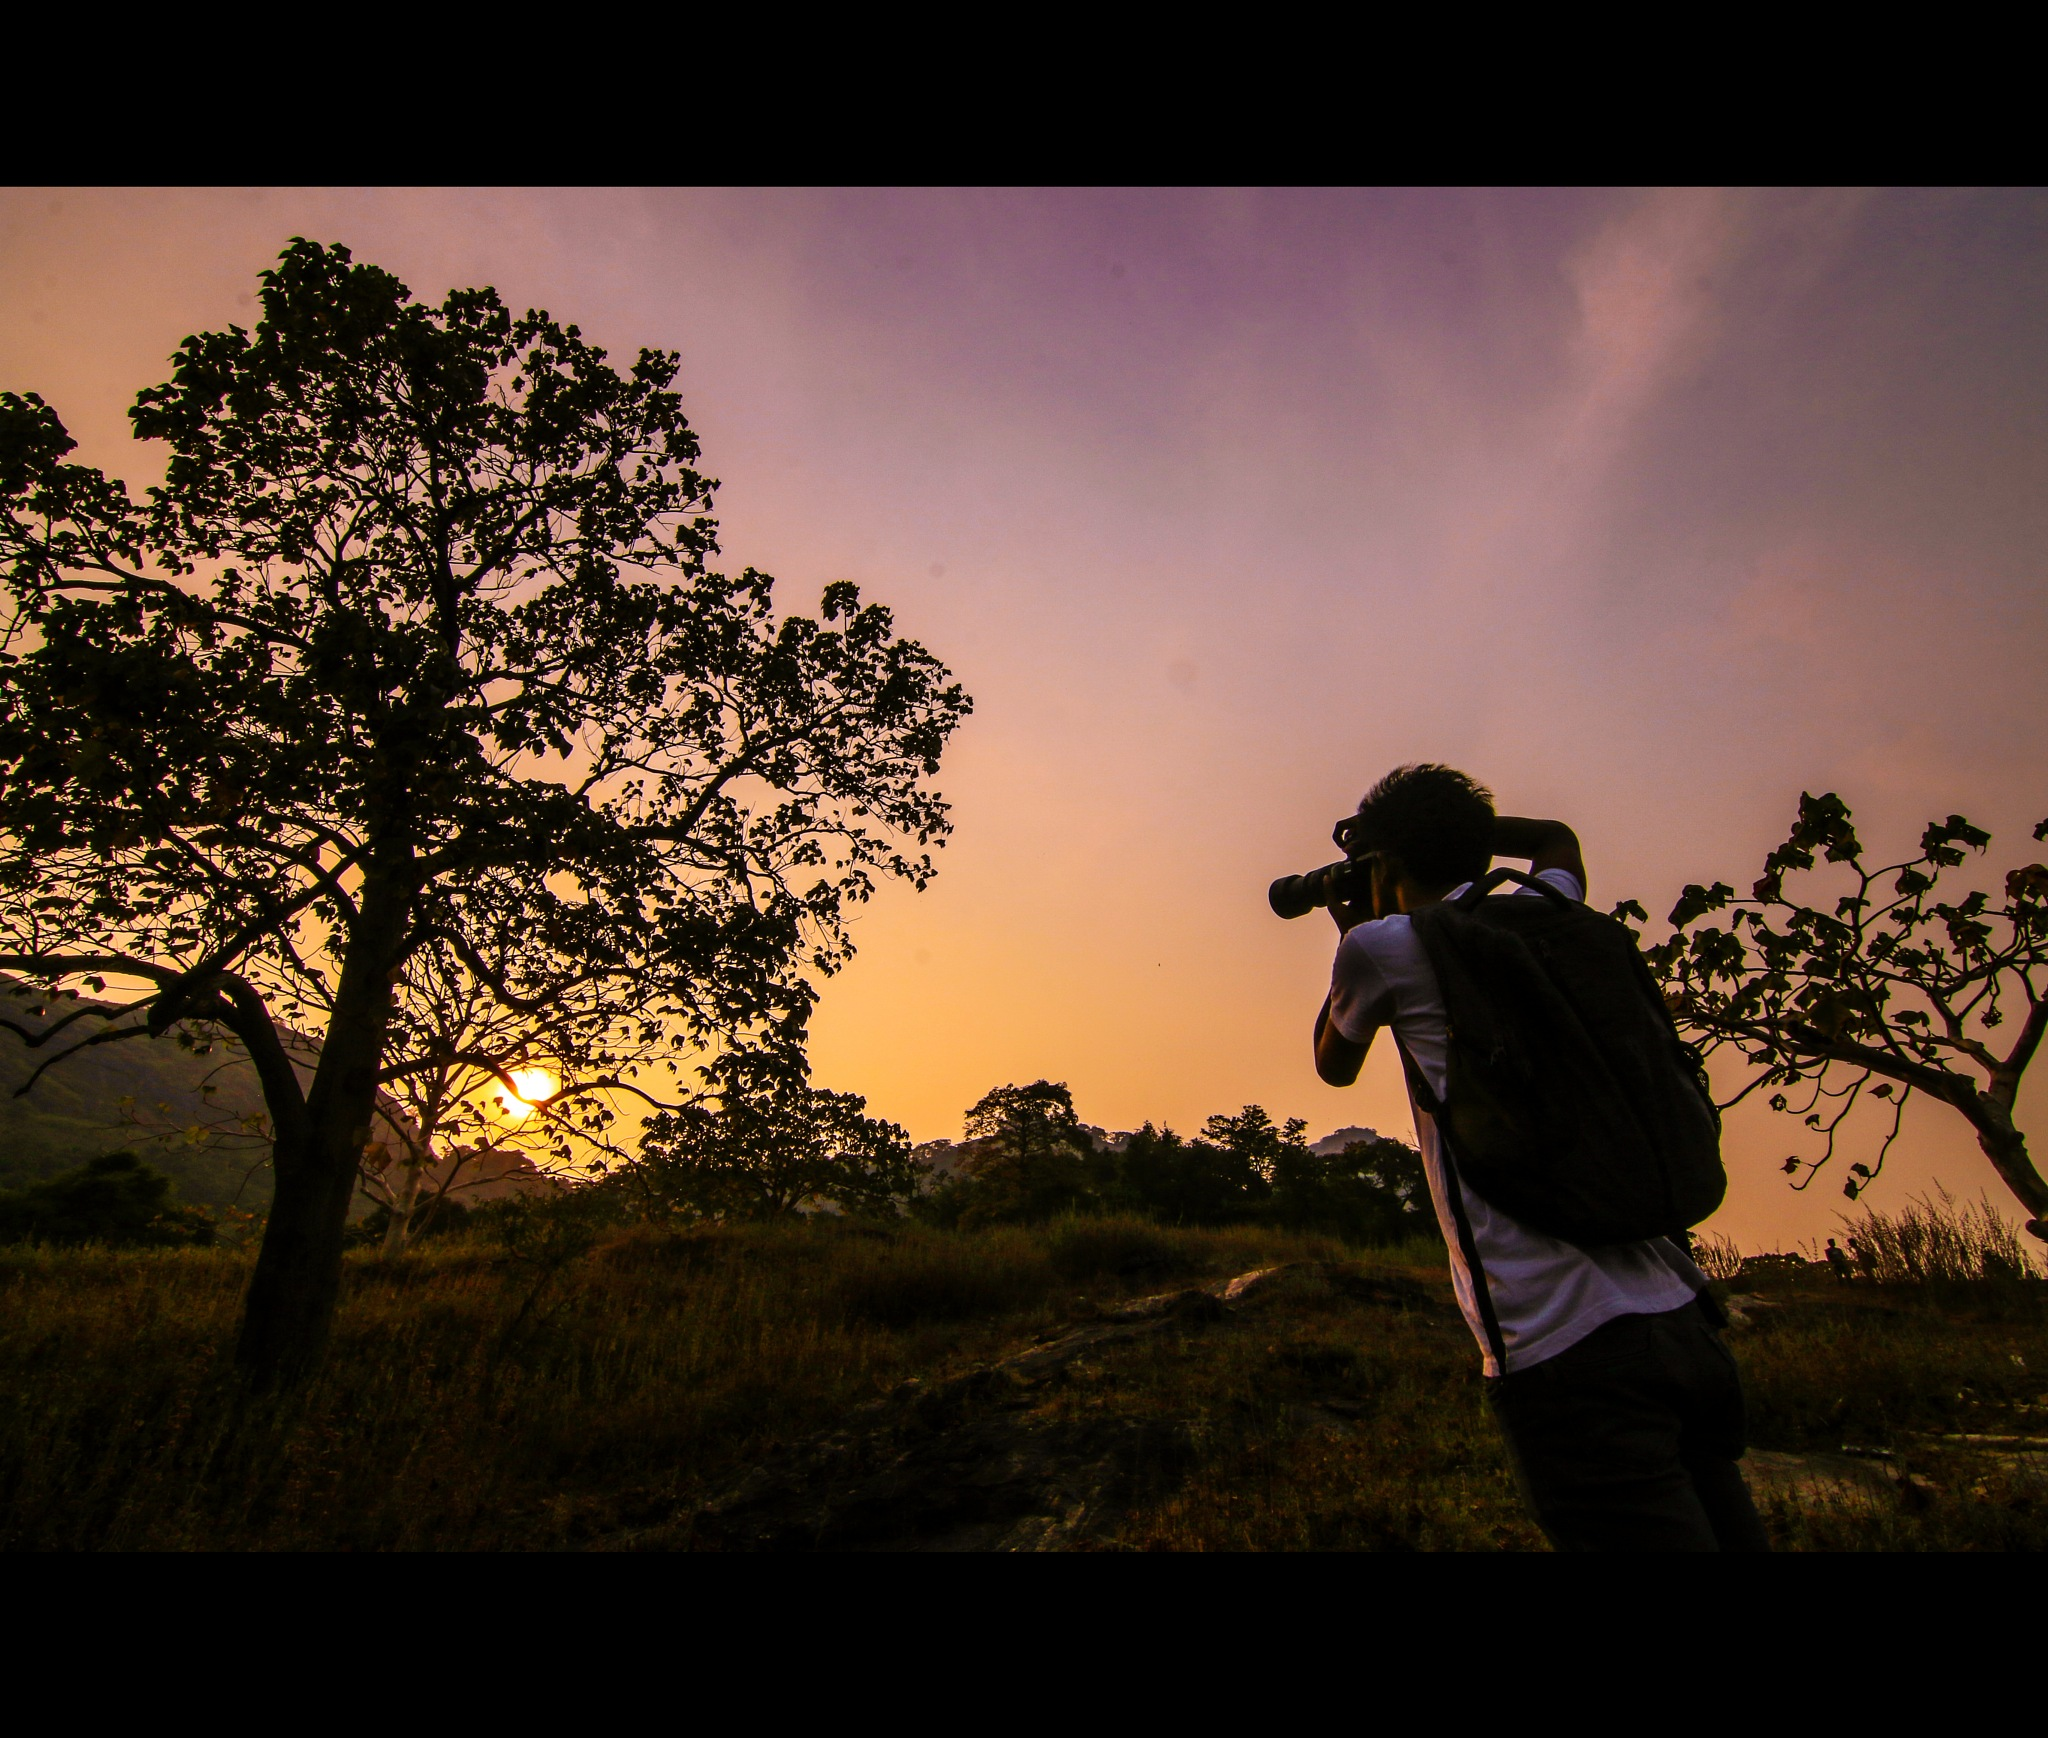 When man step's out to explore. by karthiknair56884